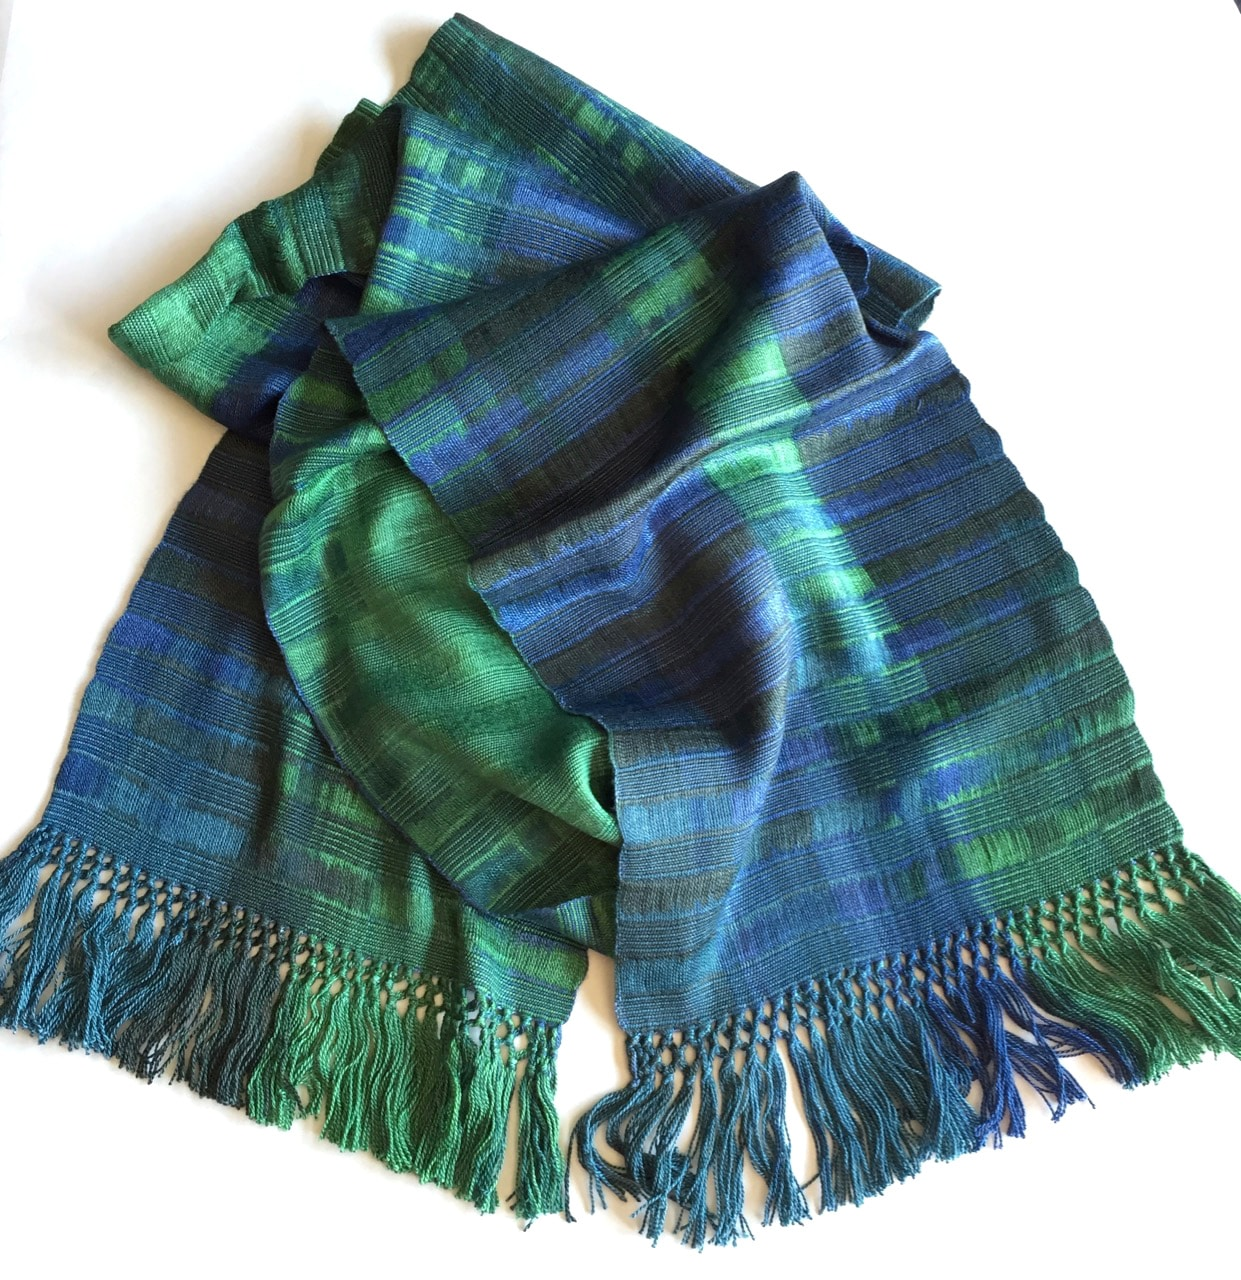 Emerald and Sapphire (Green and Blue) - Lightweight Bamboo Open-Weave Handwoven Scarf 8